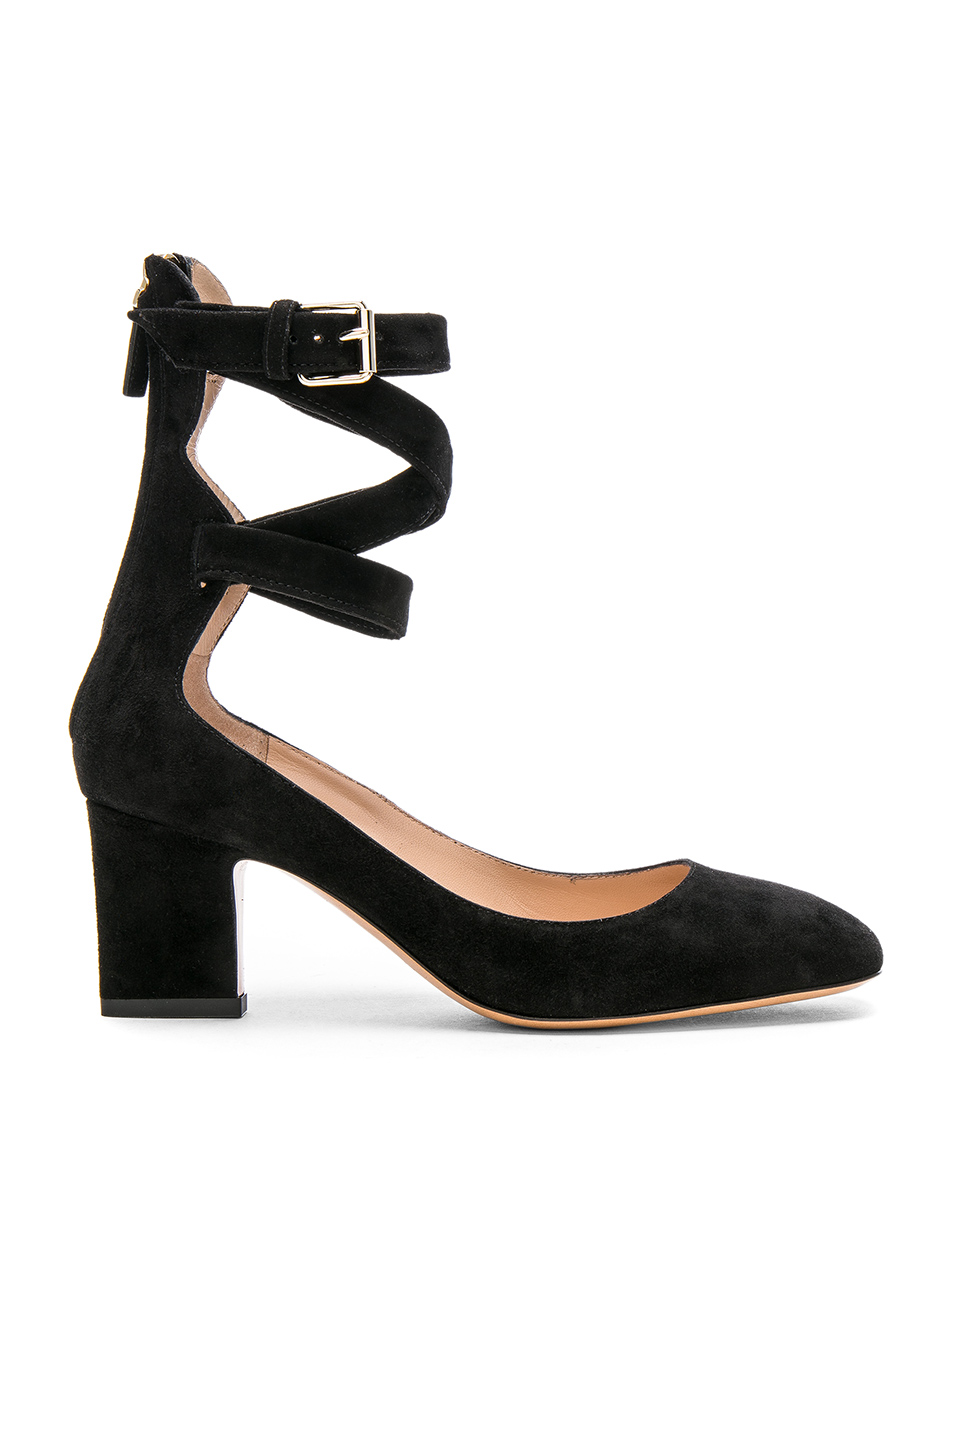 Valentino Suede Ankle Strap Heels in Black